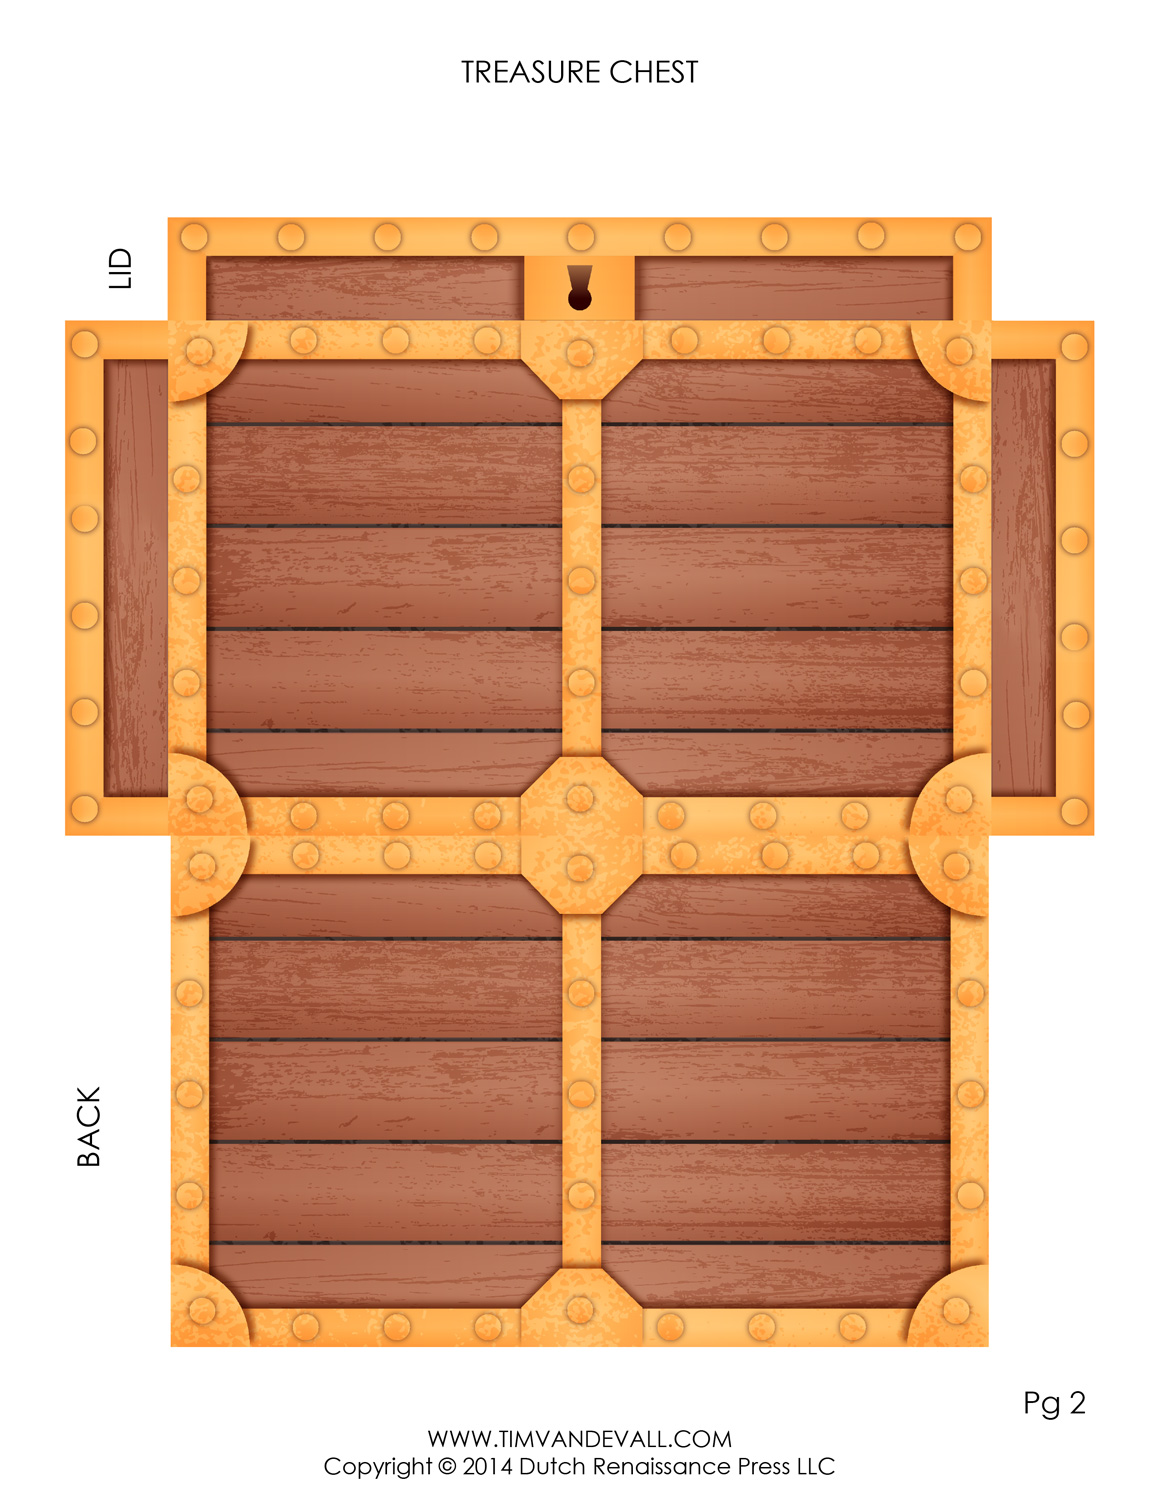 Pirate Treasure Chest Template | Make Your Own Paper ...